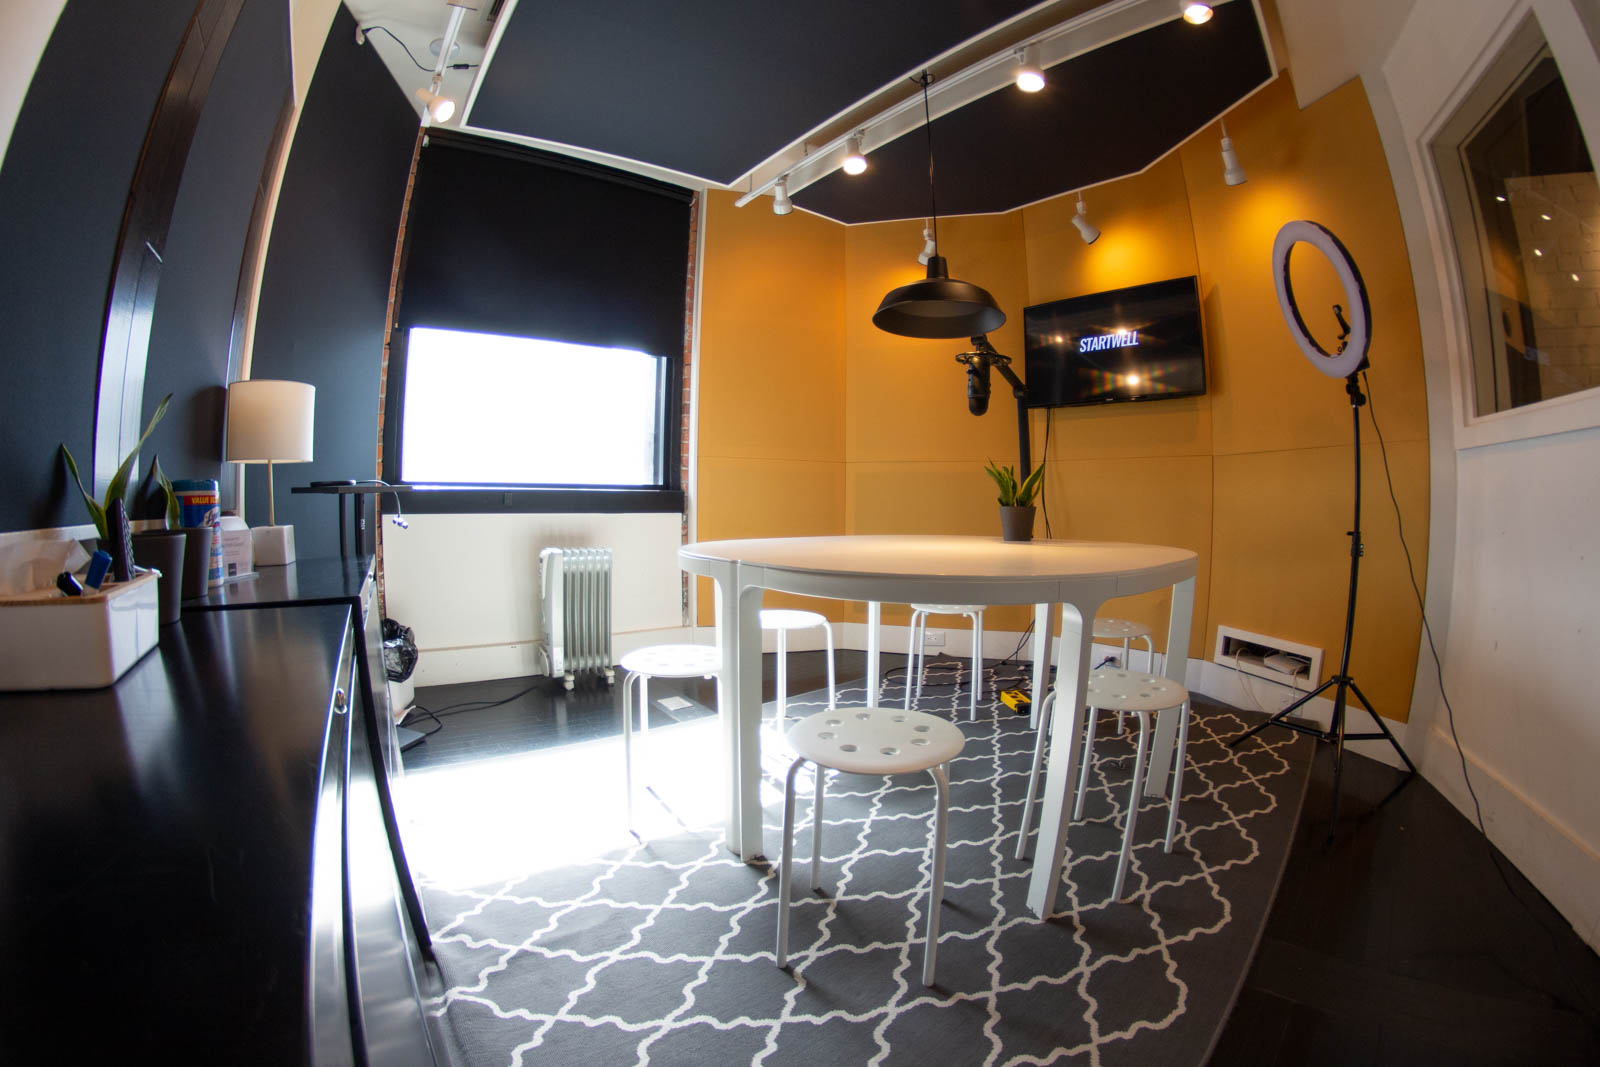 Professionally sound-proofed, our podcast recording studio offers a unique space for meetings